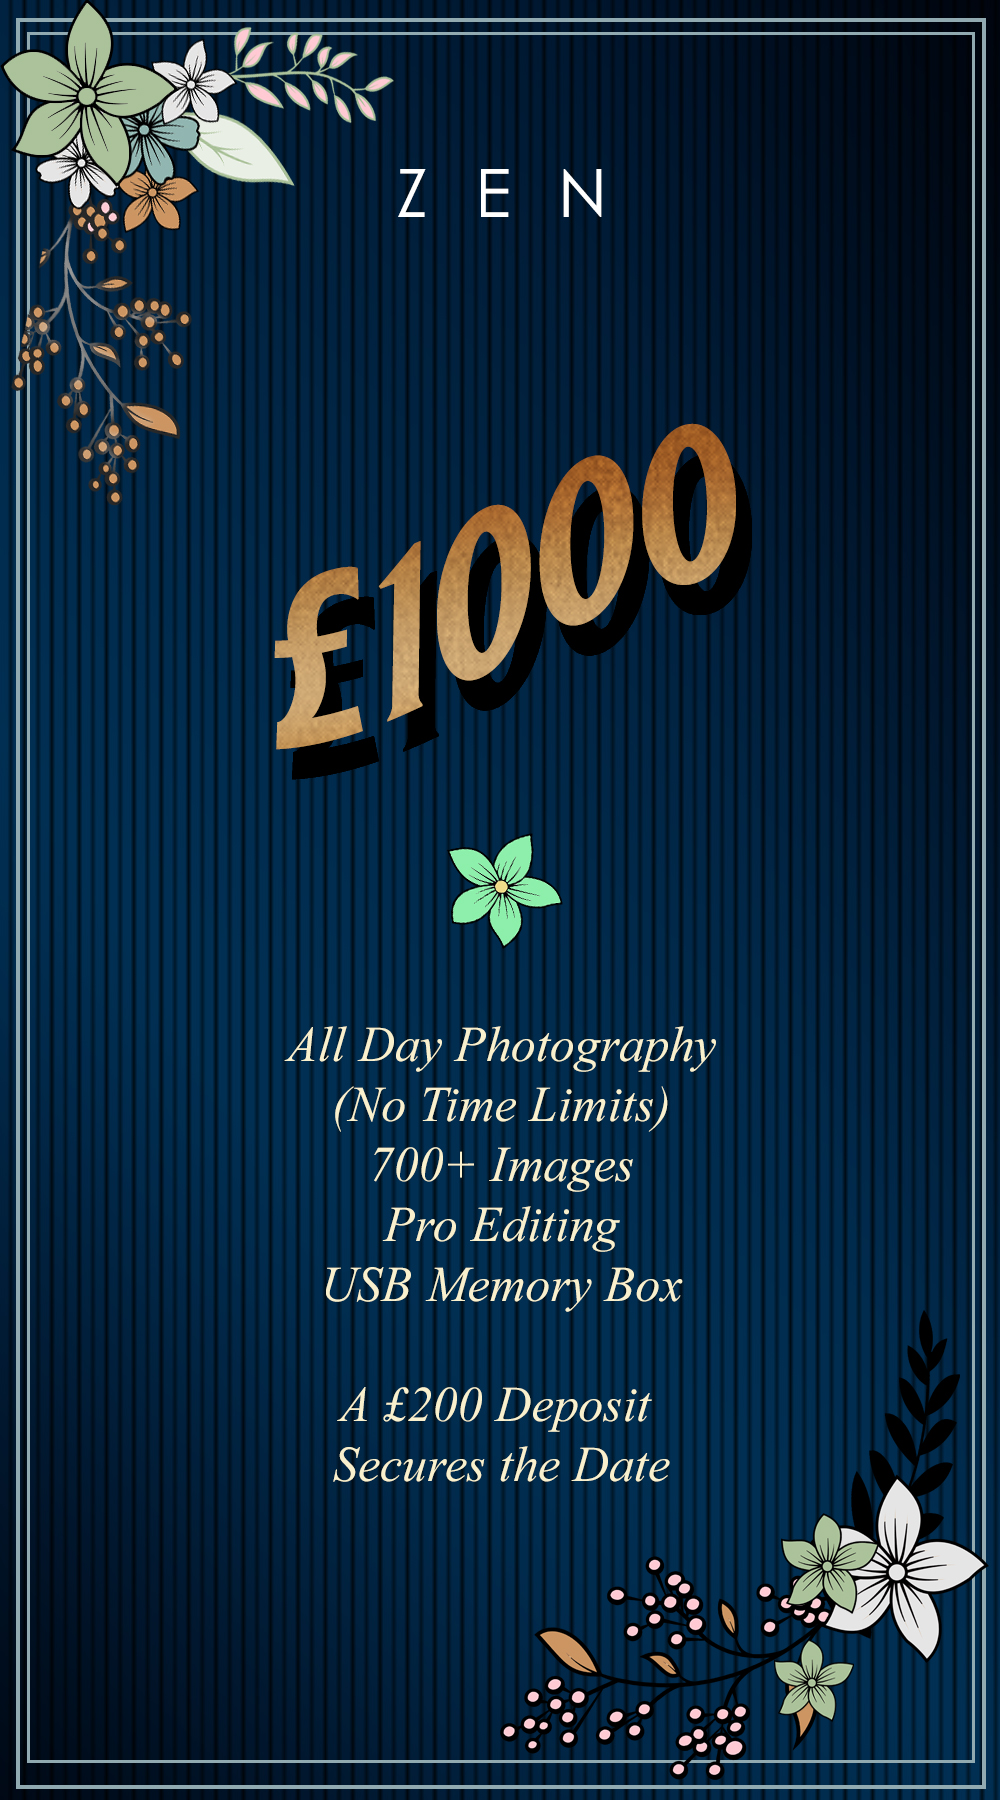 Showing the prices for Wedding Photography in Surrey